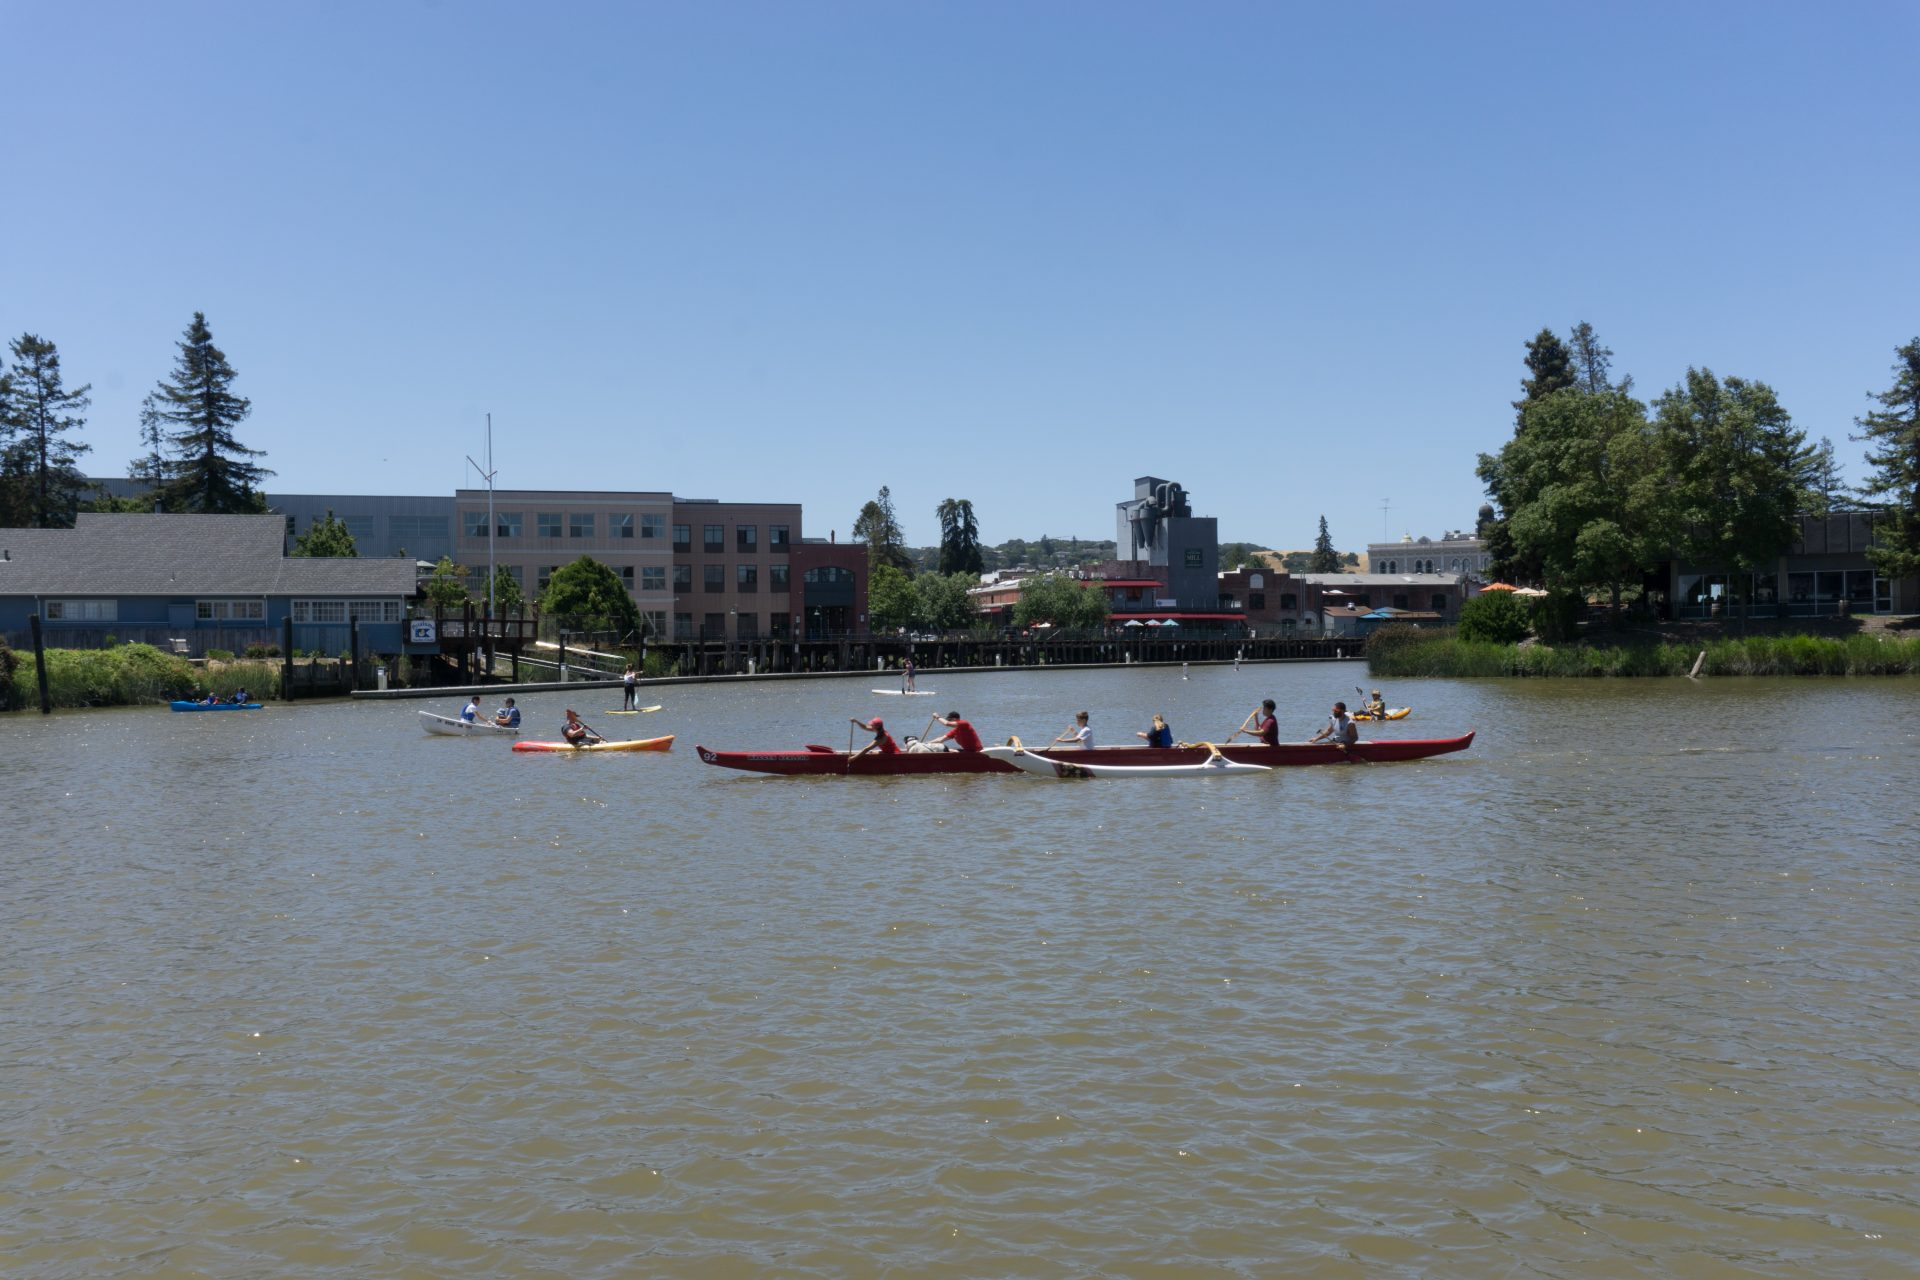 Paddlers in a long outrigger canoe, with kayakers and standup paddlers nearby